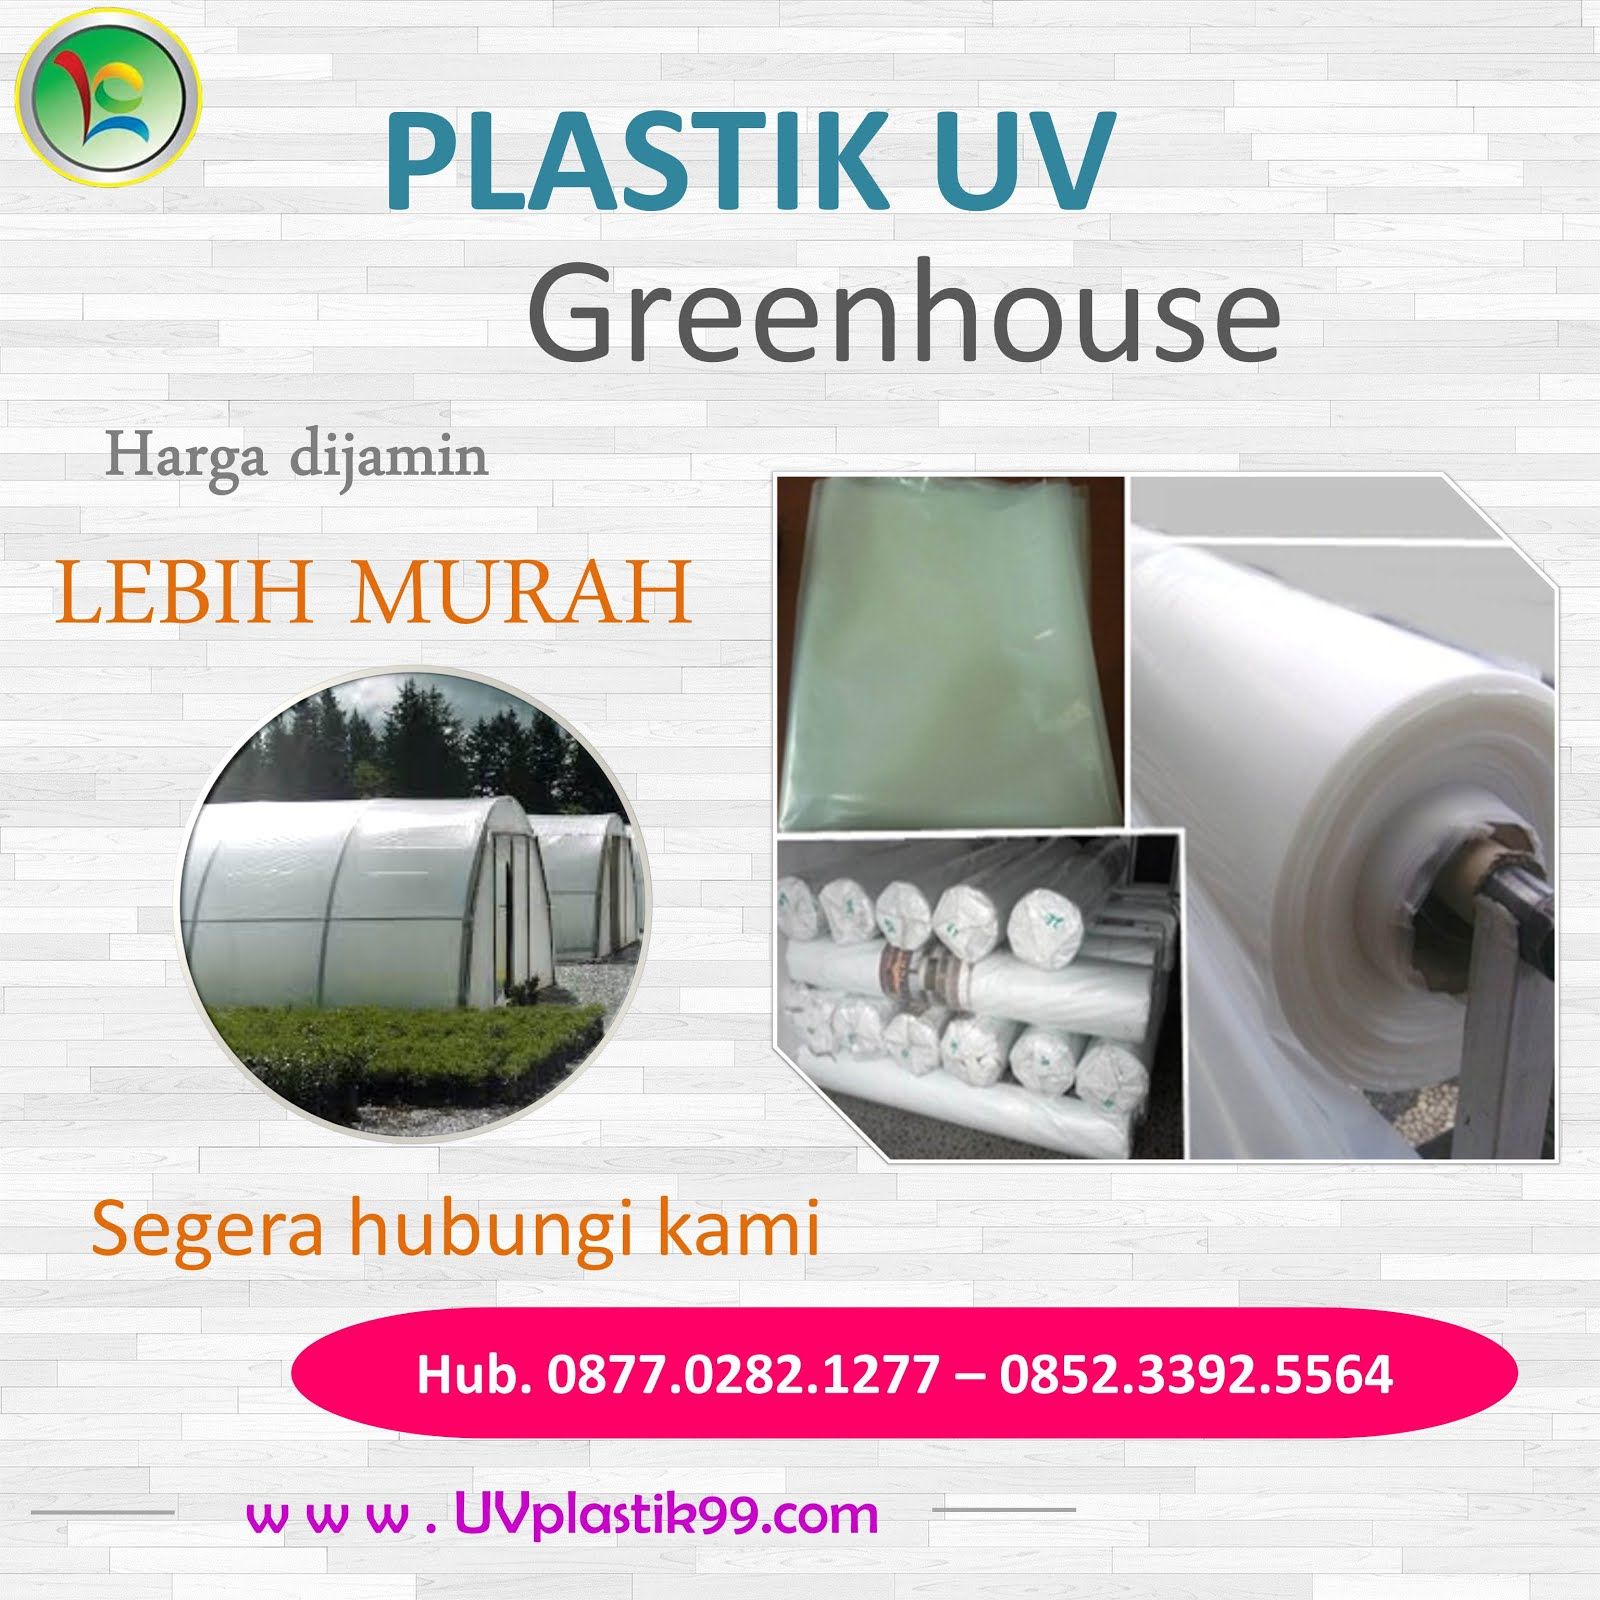 Plastik UV Greenhouse